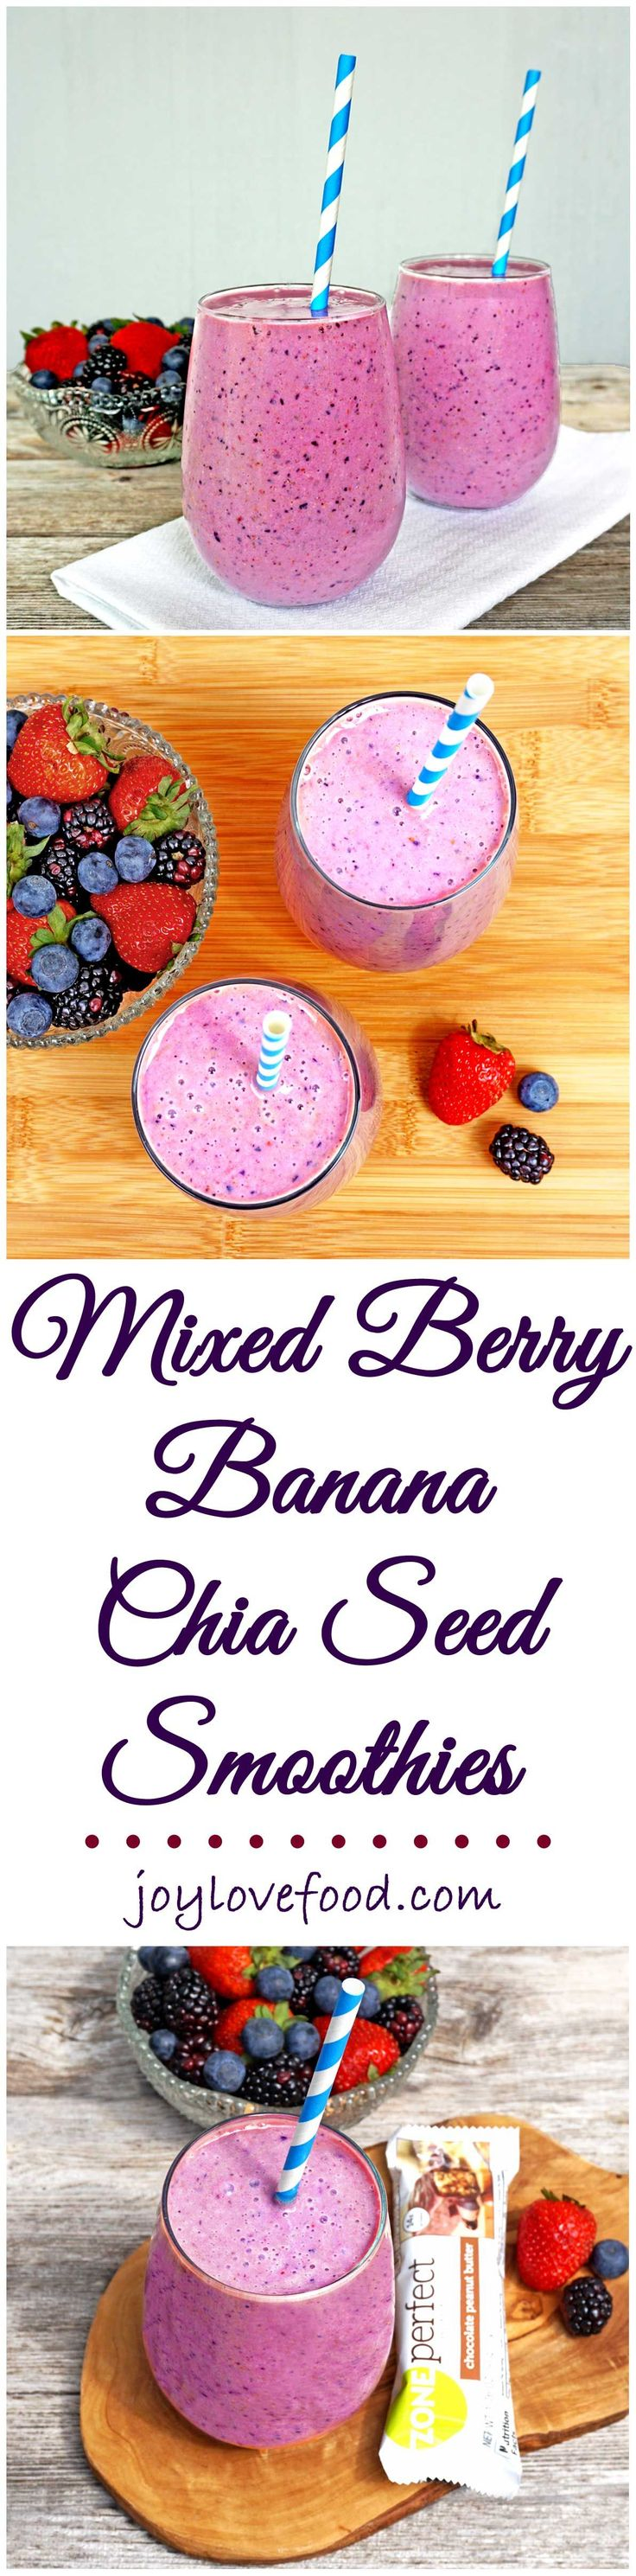 Mixed Berry Banana Chia Seed Smoothies - one of these bright and creamy smoothies along with a ZonePerfect® Nutrition Bar, is perfect for a healthy, delicious and energizing snack. #SnackandRally #ad